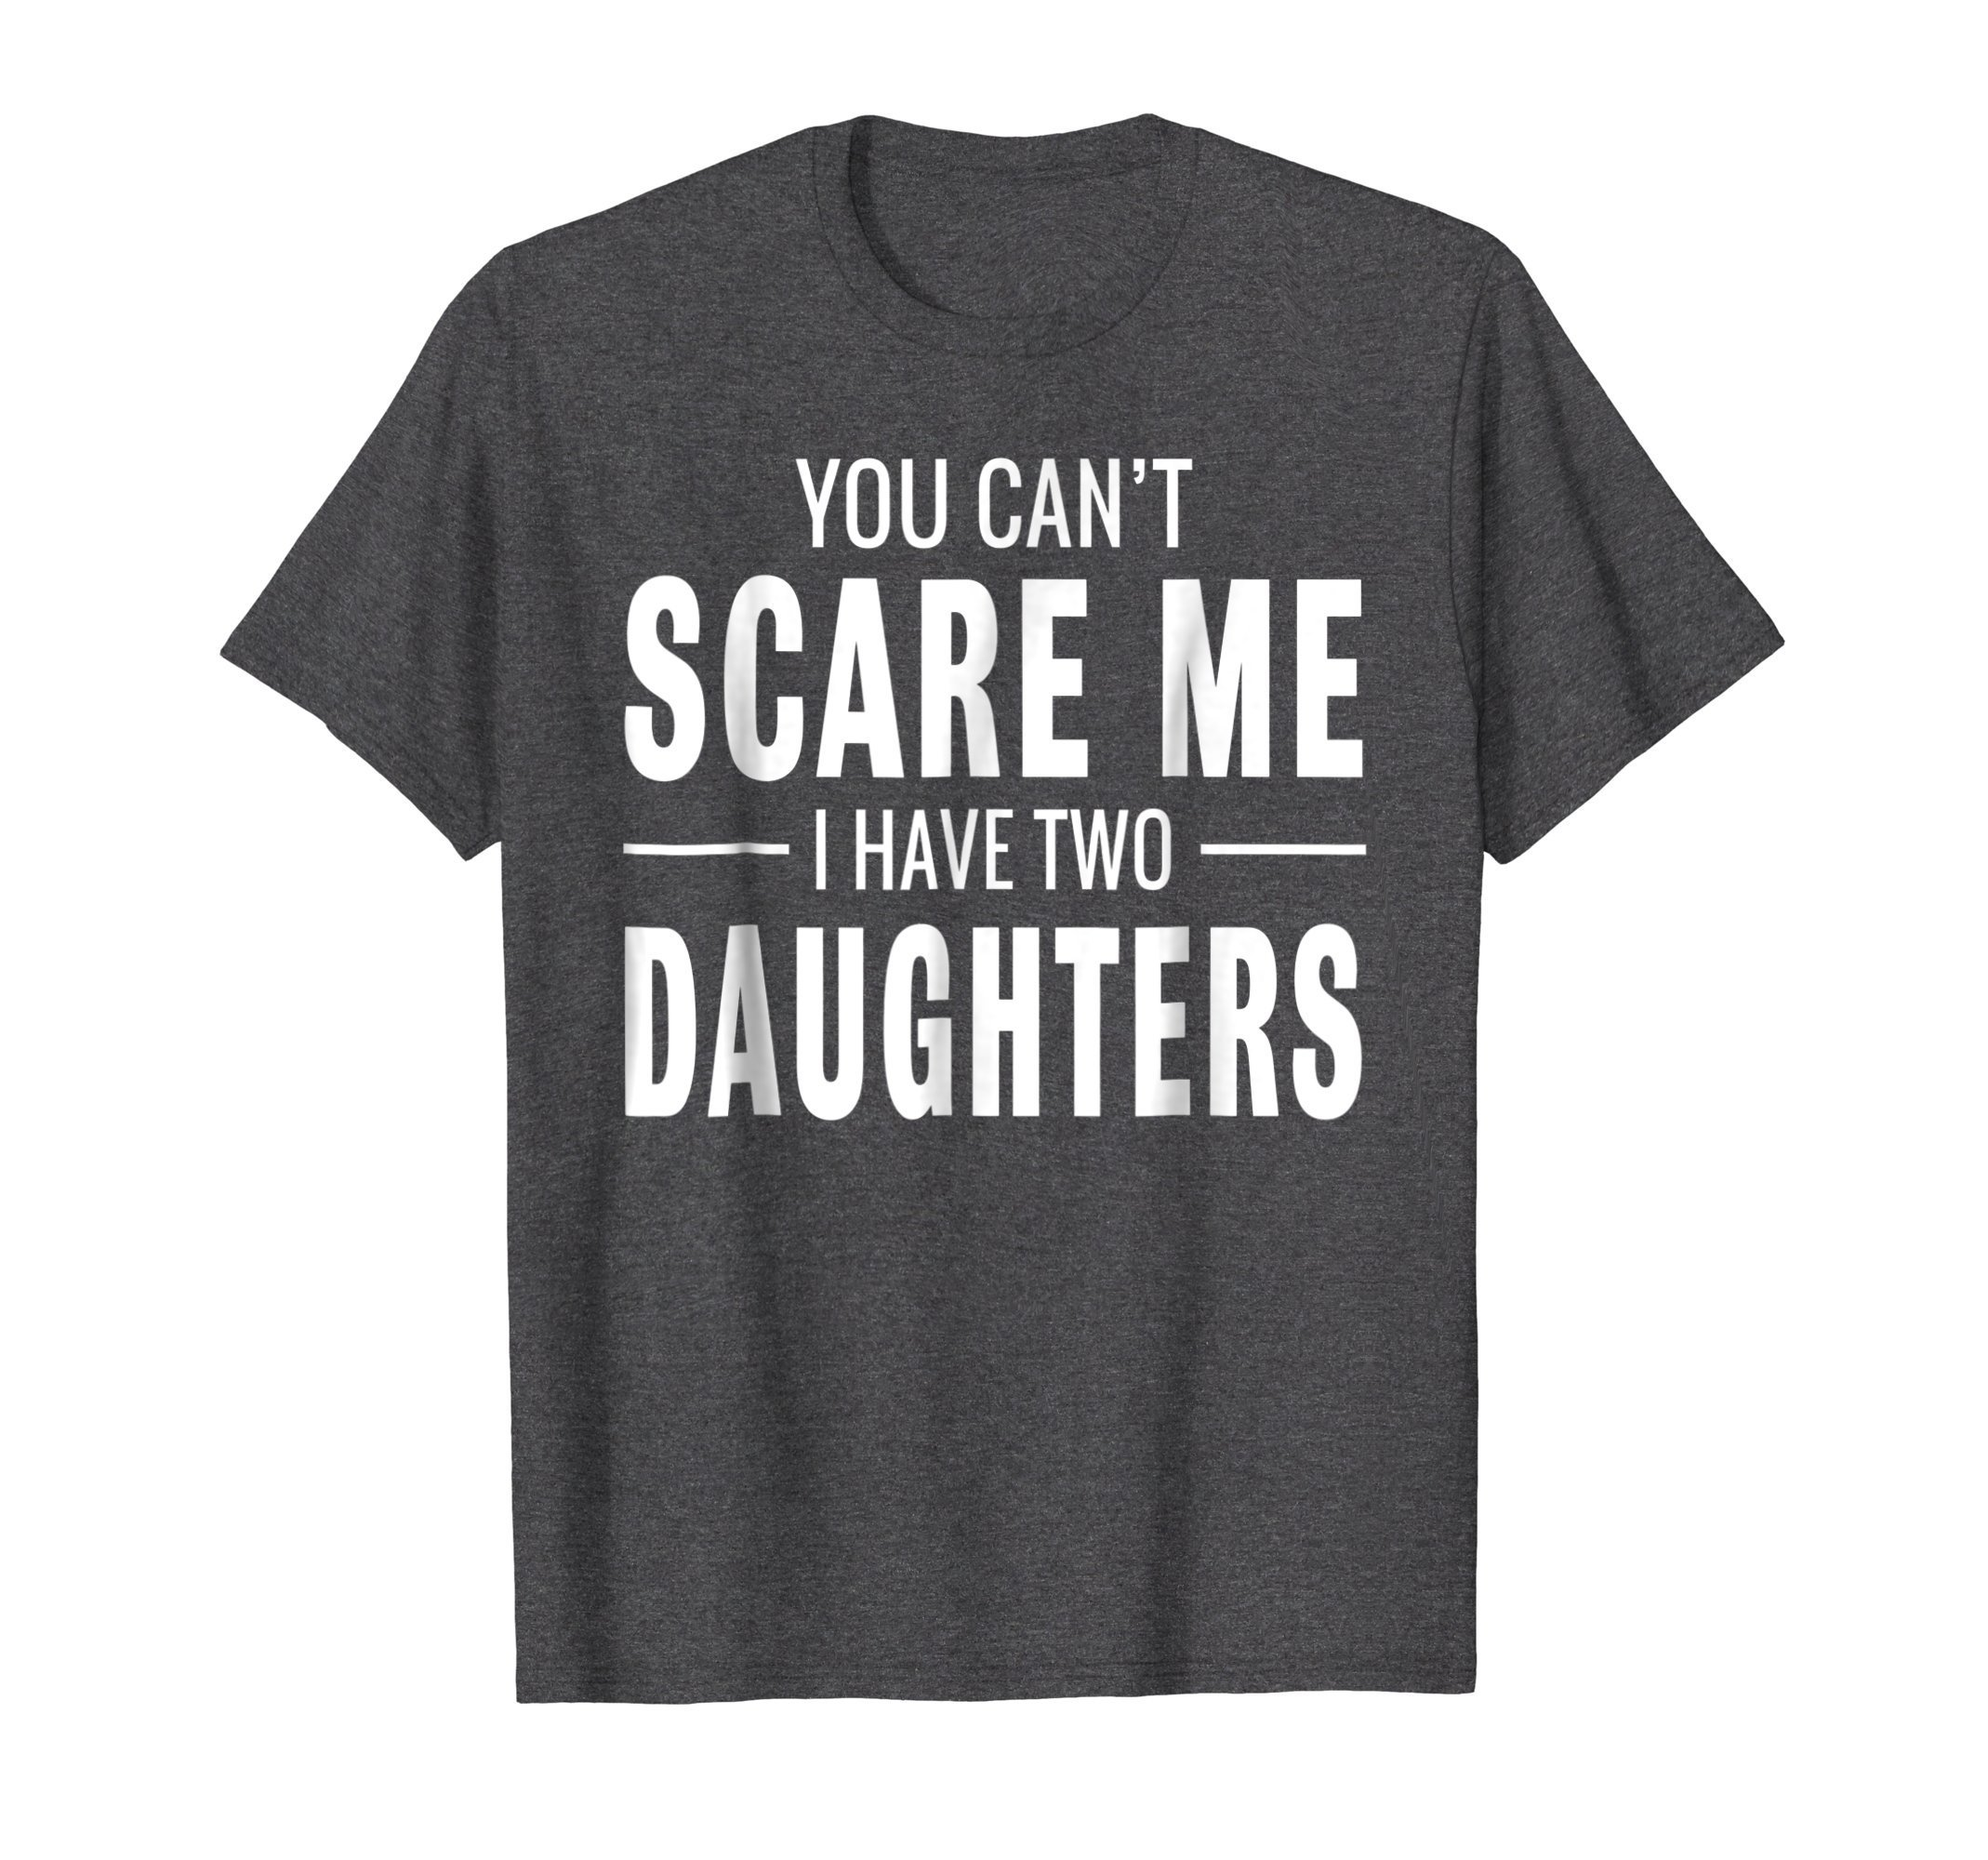 Mens You Can't Scare Me I Have Two Daughters T-shirt Large Dark Heather